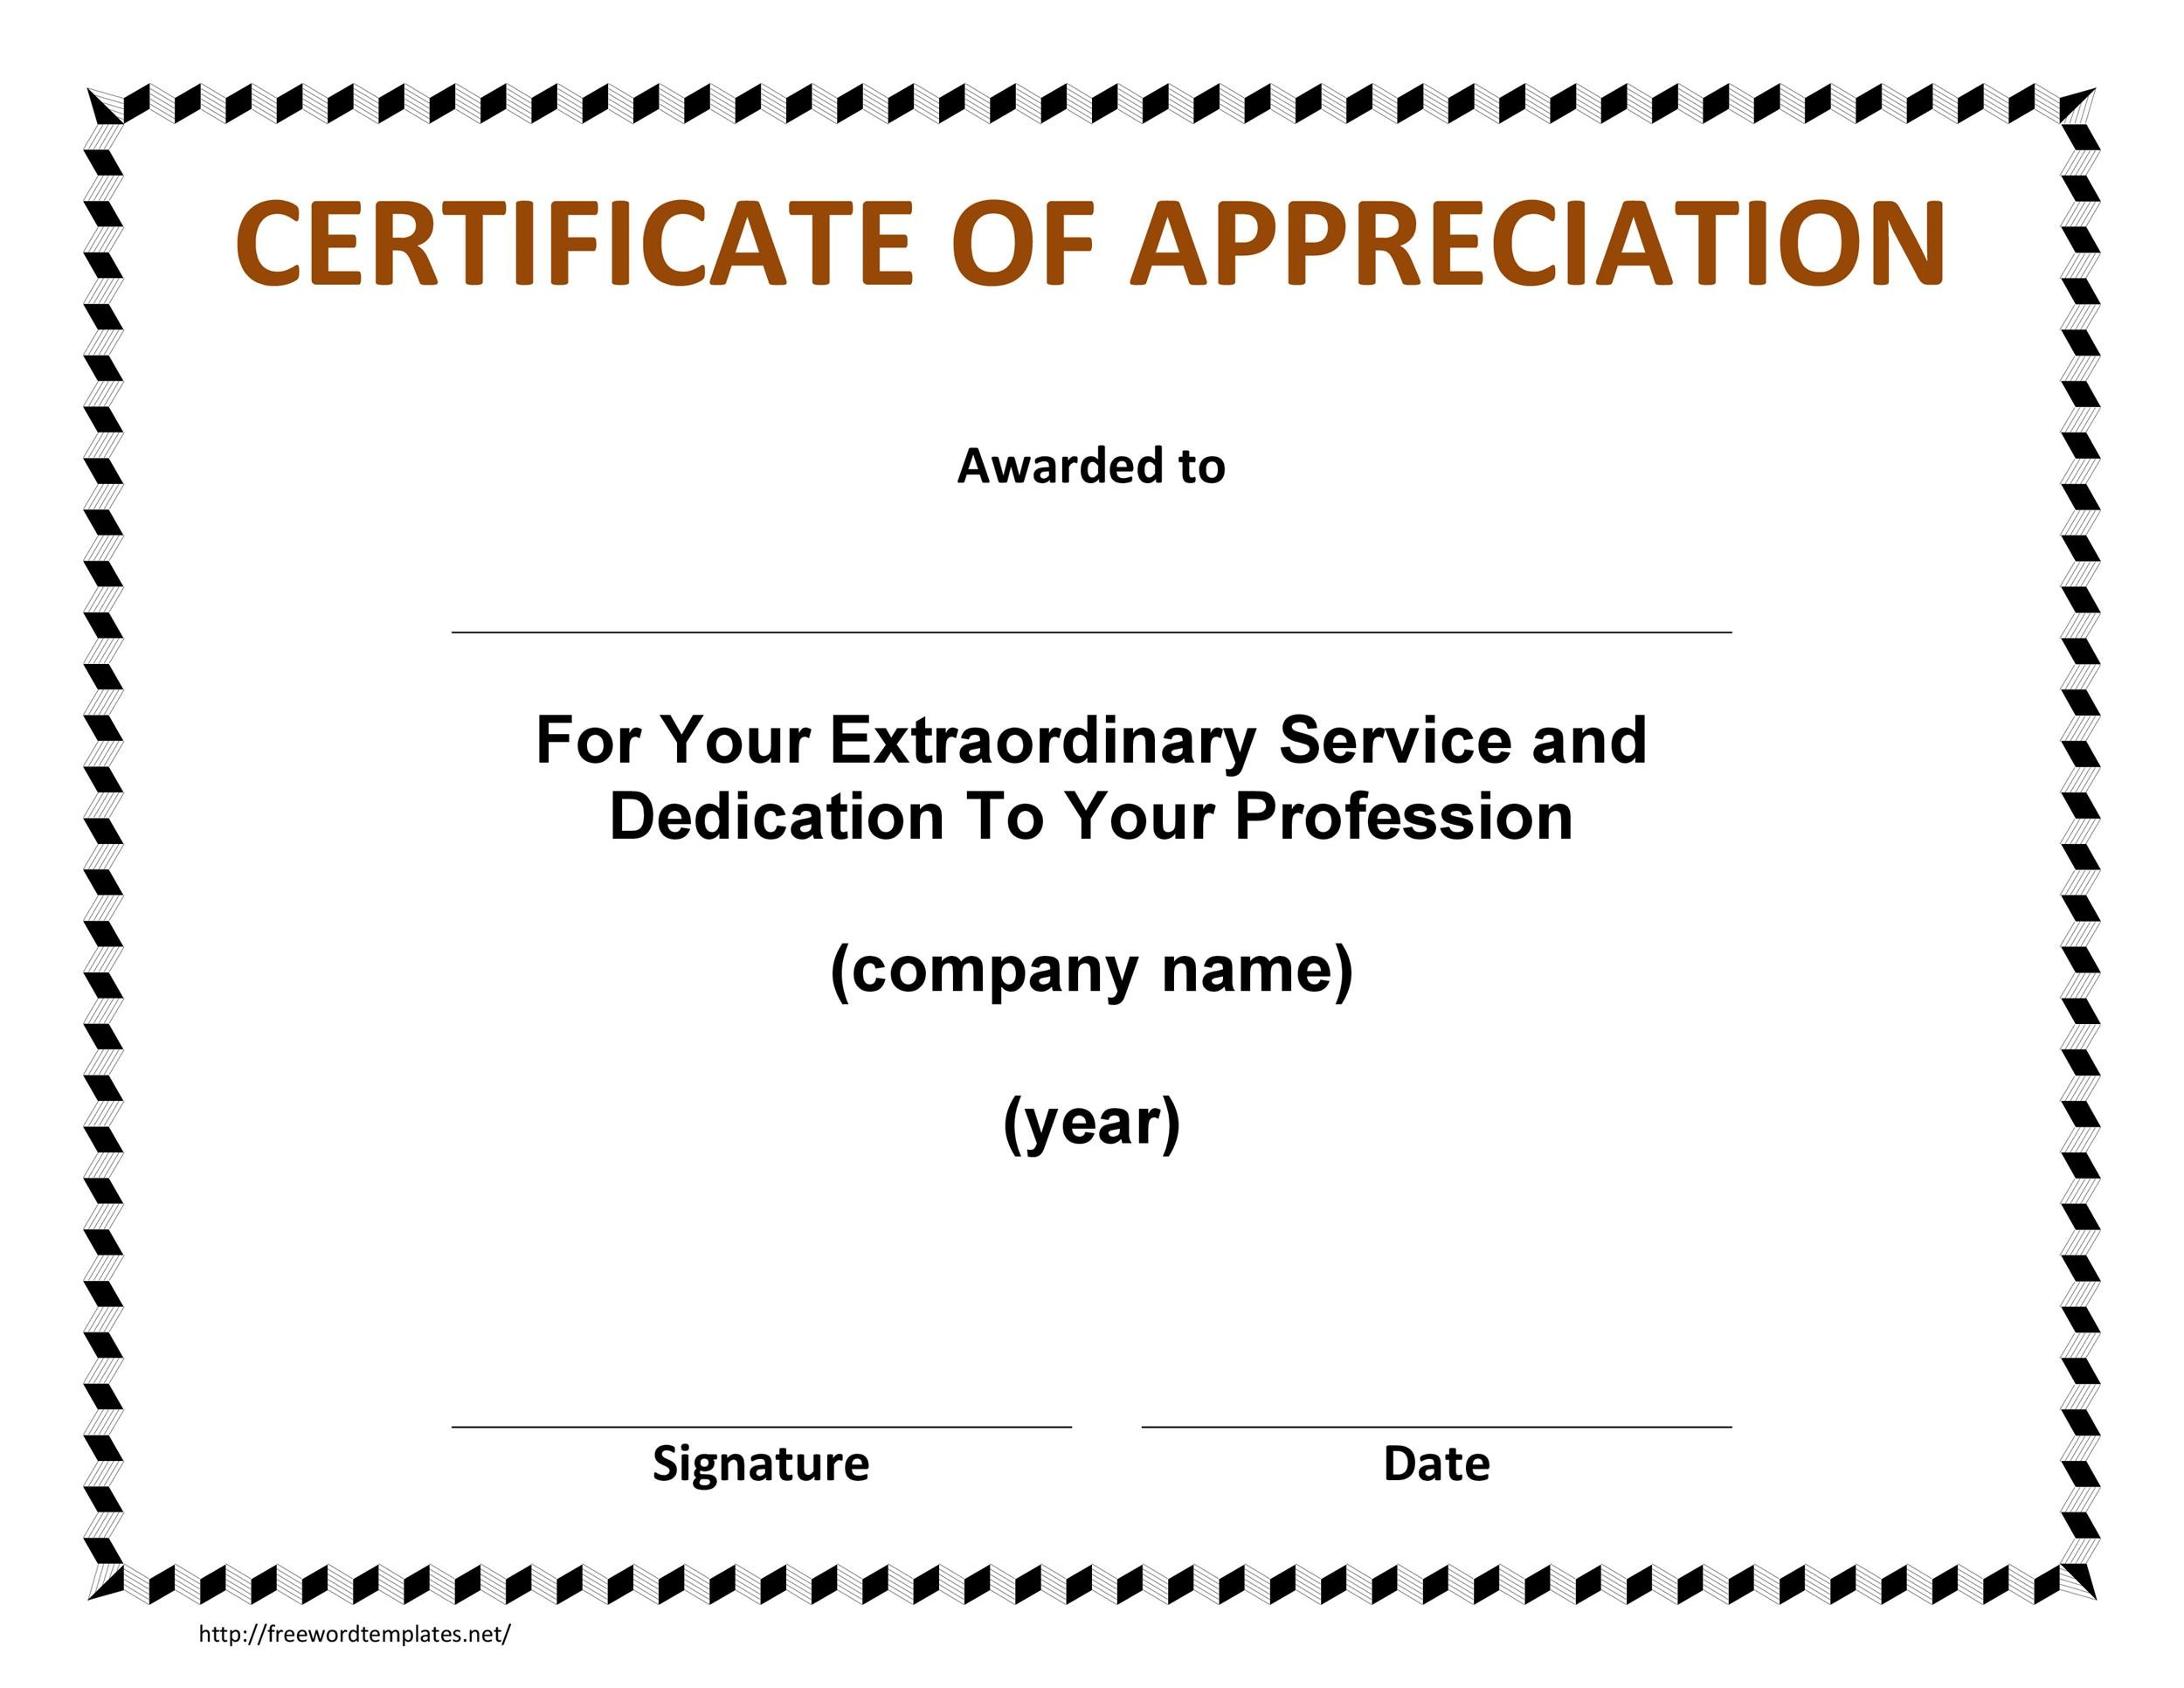 Printable Certificate Of Appreciation 04  Certificate Of Appreciation Word Template